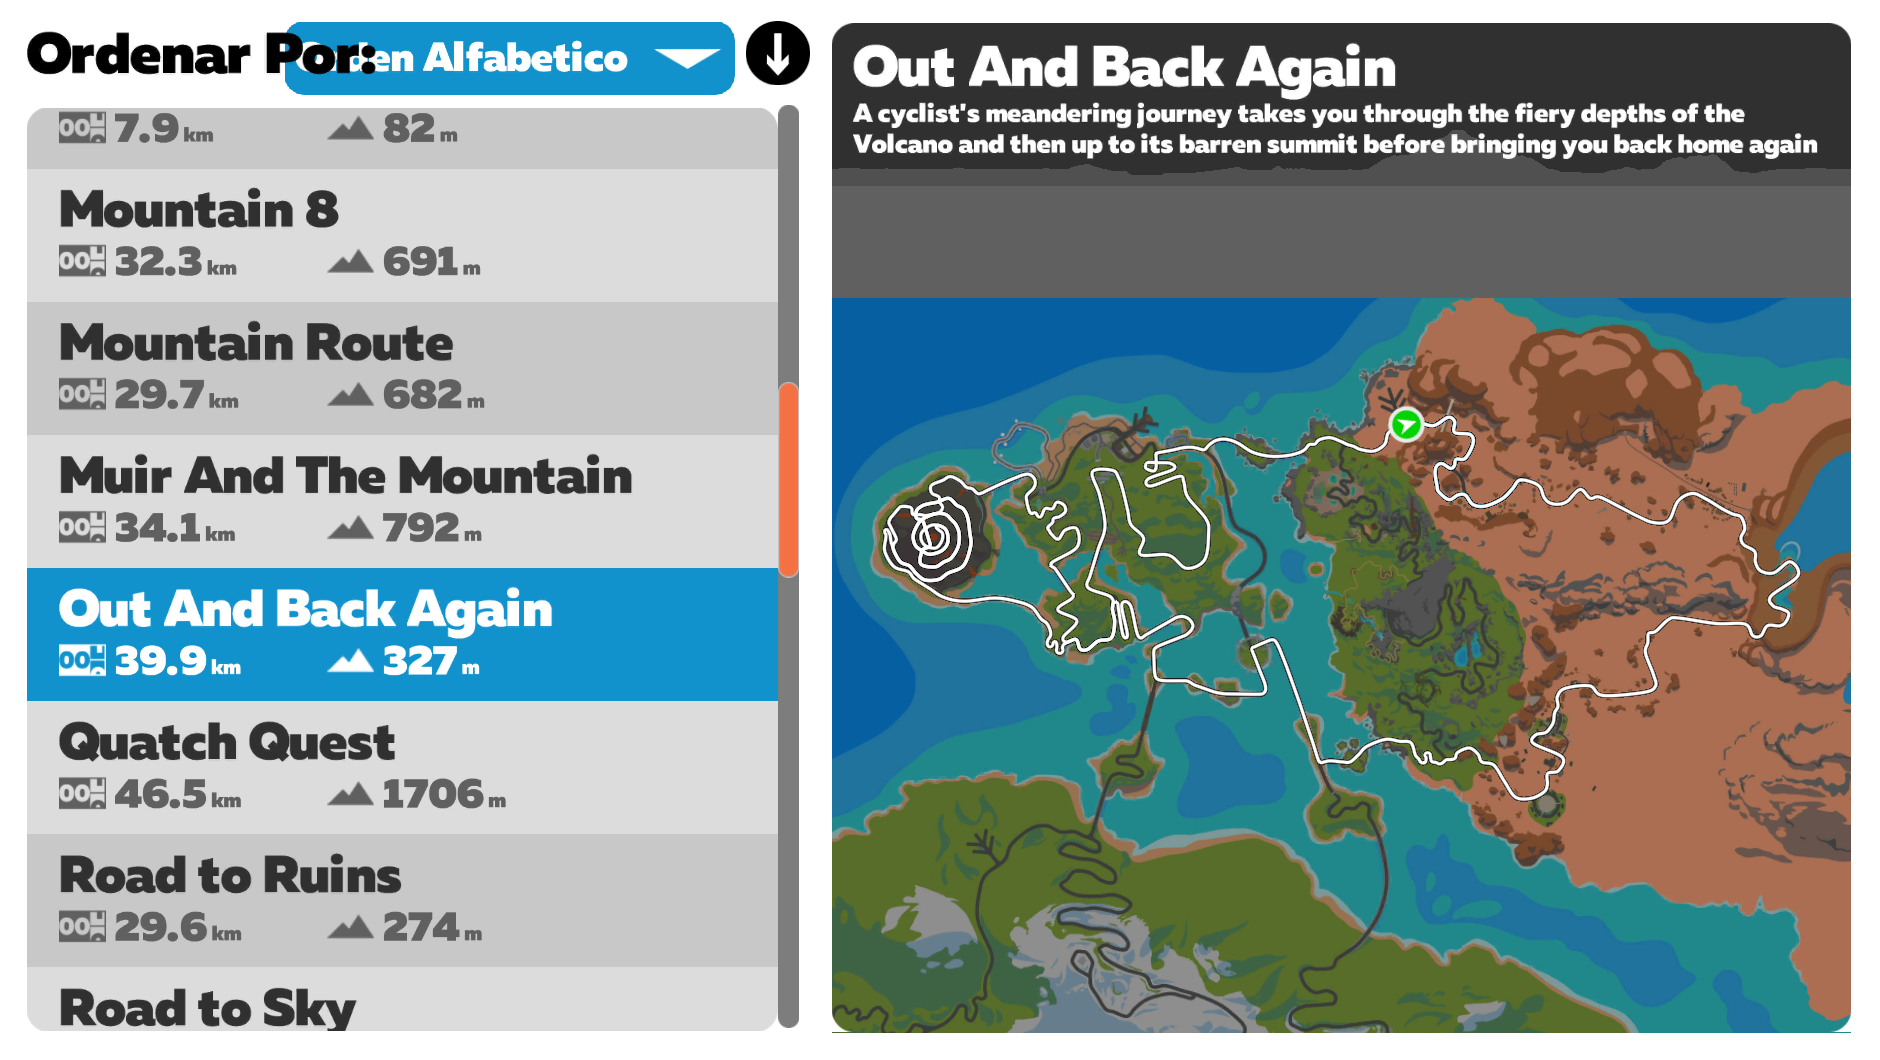 Ruta Zwift out and back again